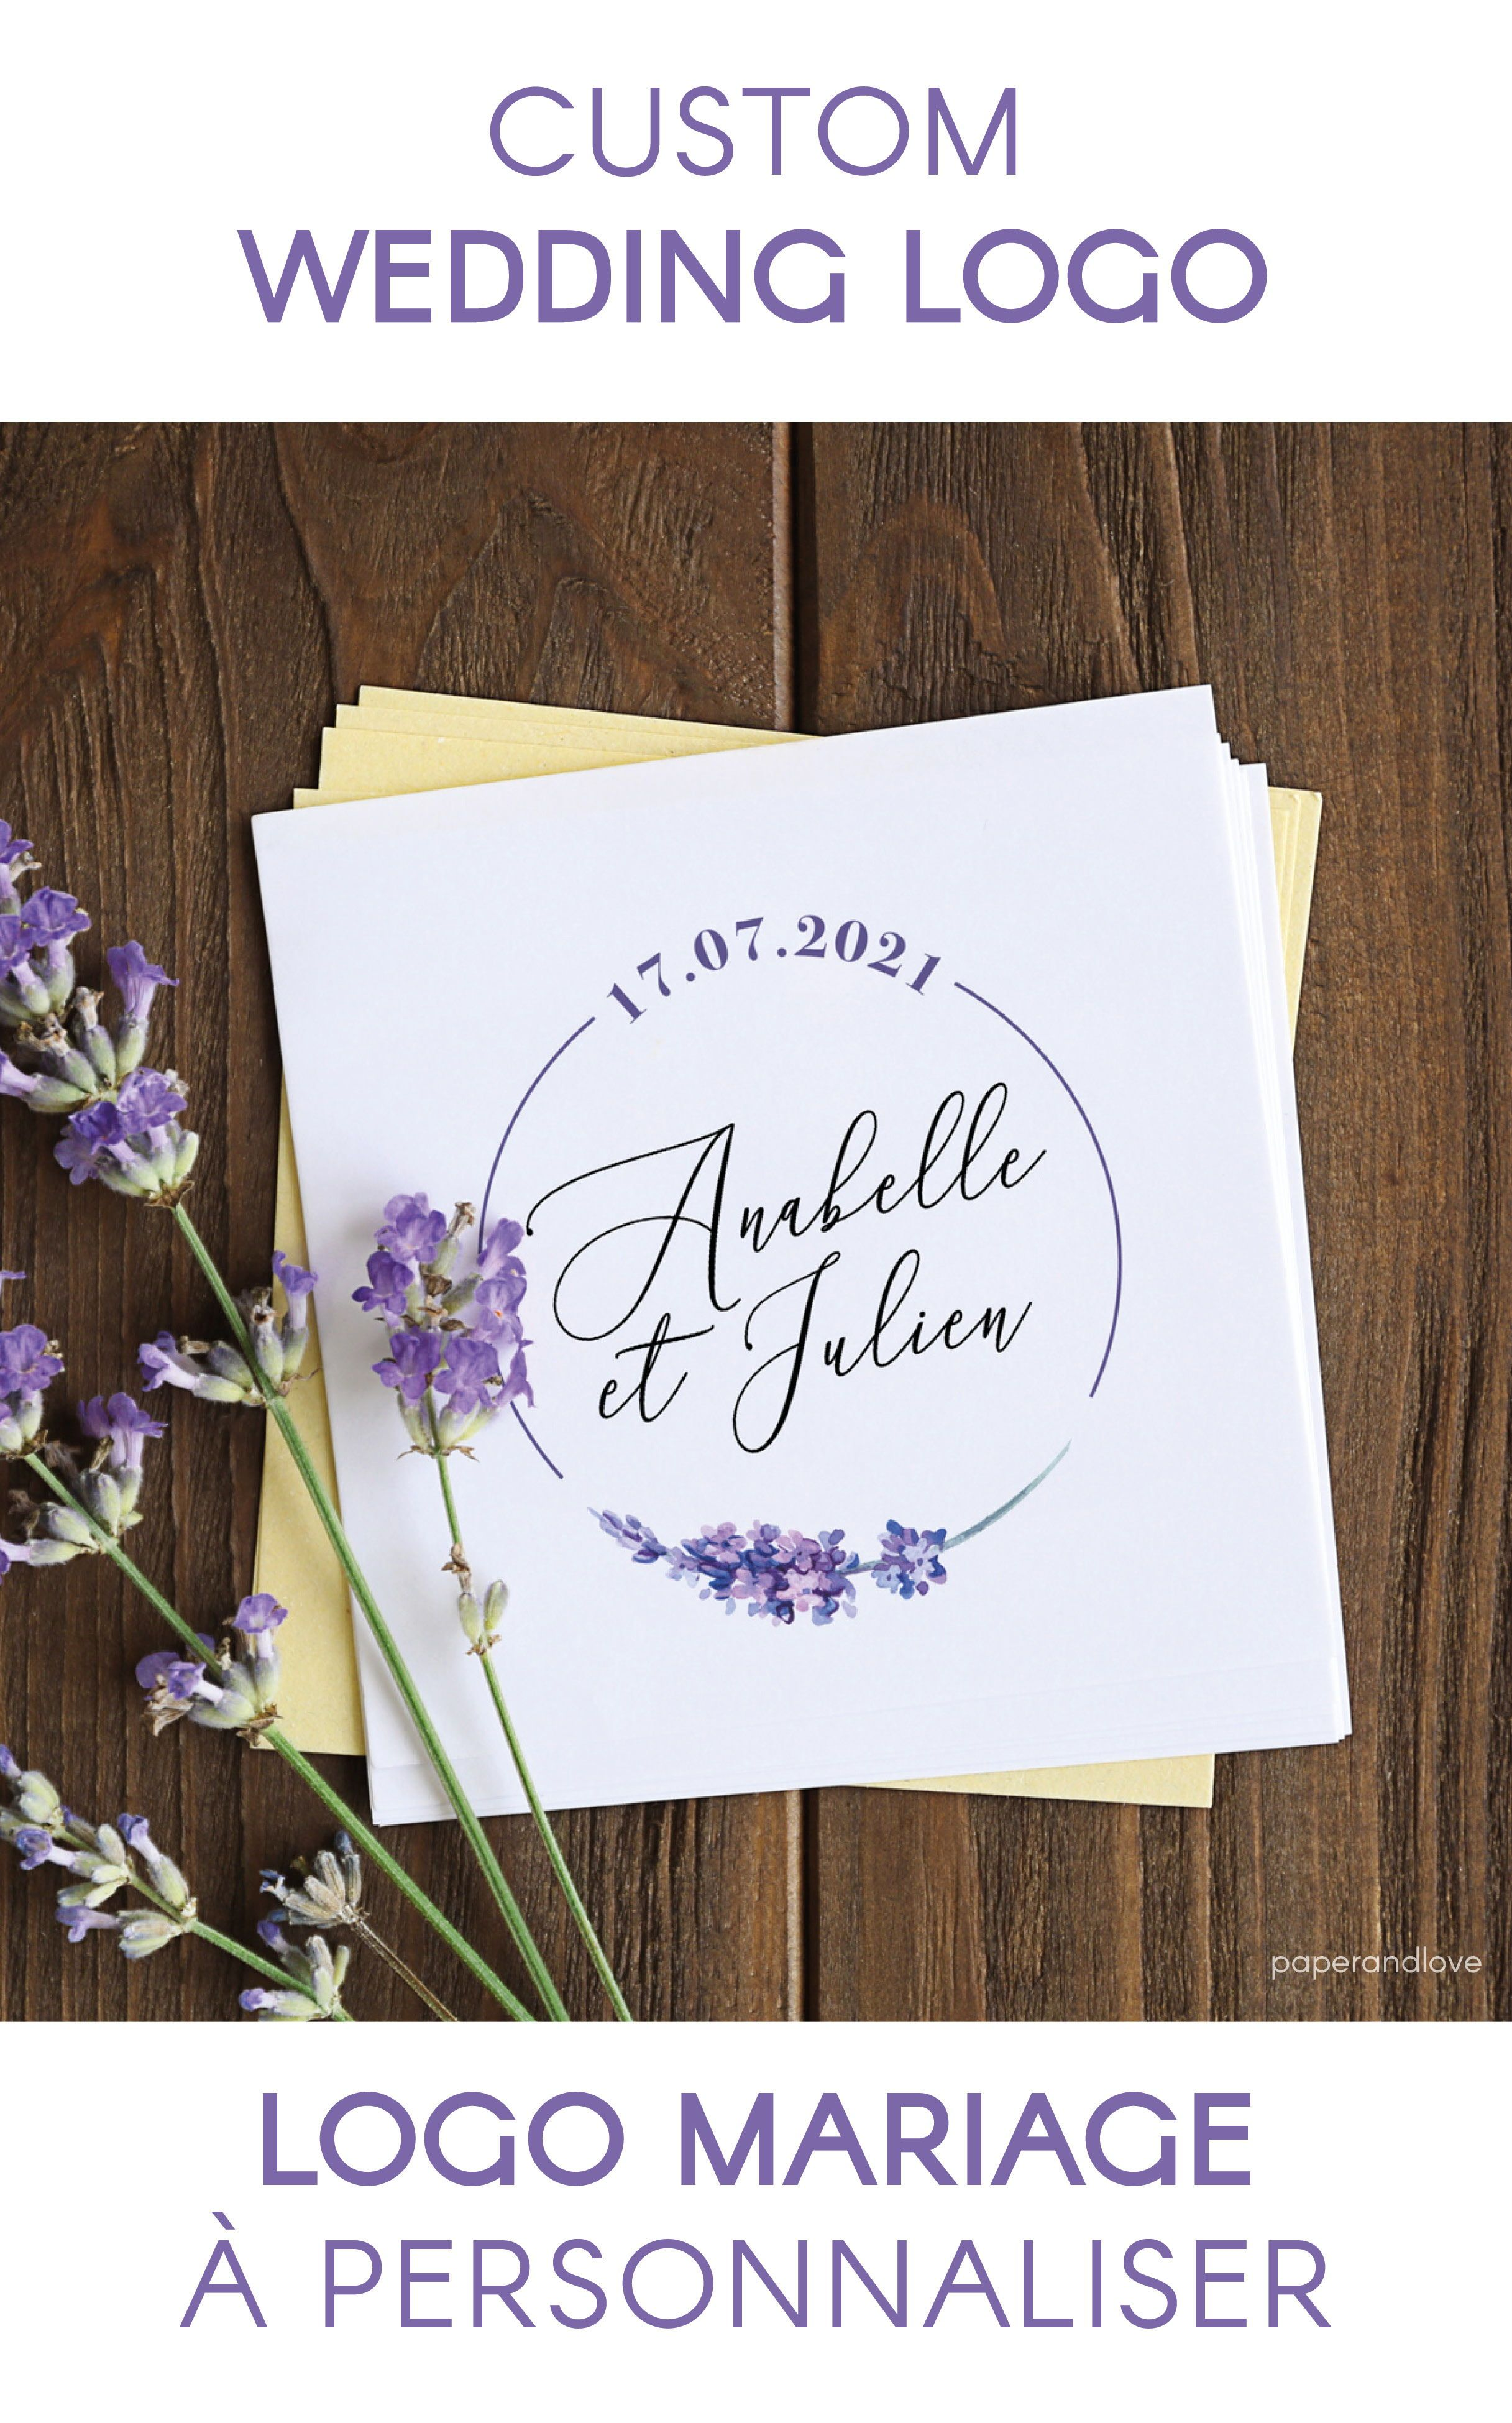 Logo wedding personalized with names, dates, initials – Provence lavender, nature and purple flowers. Wedding stationery, graphics